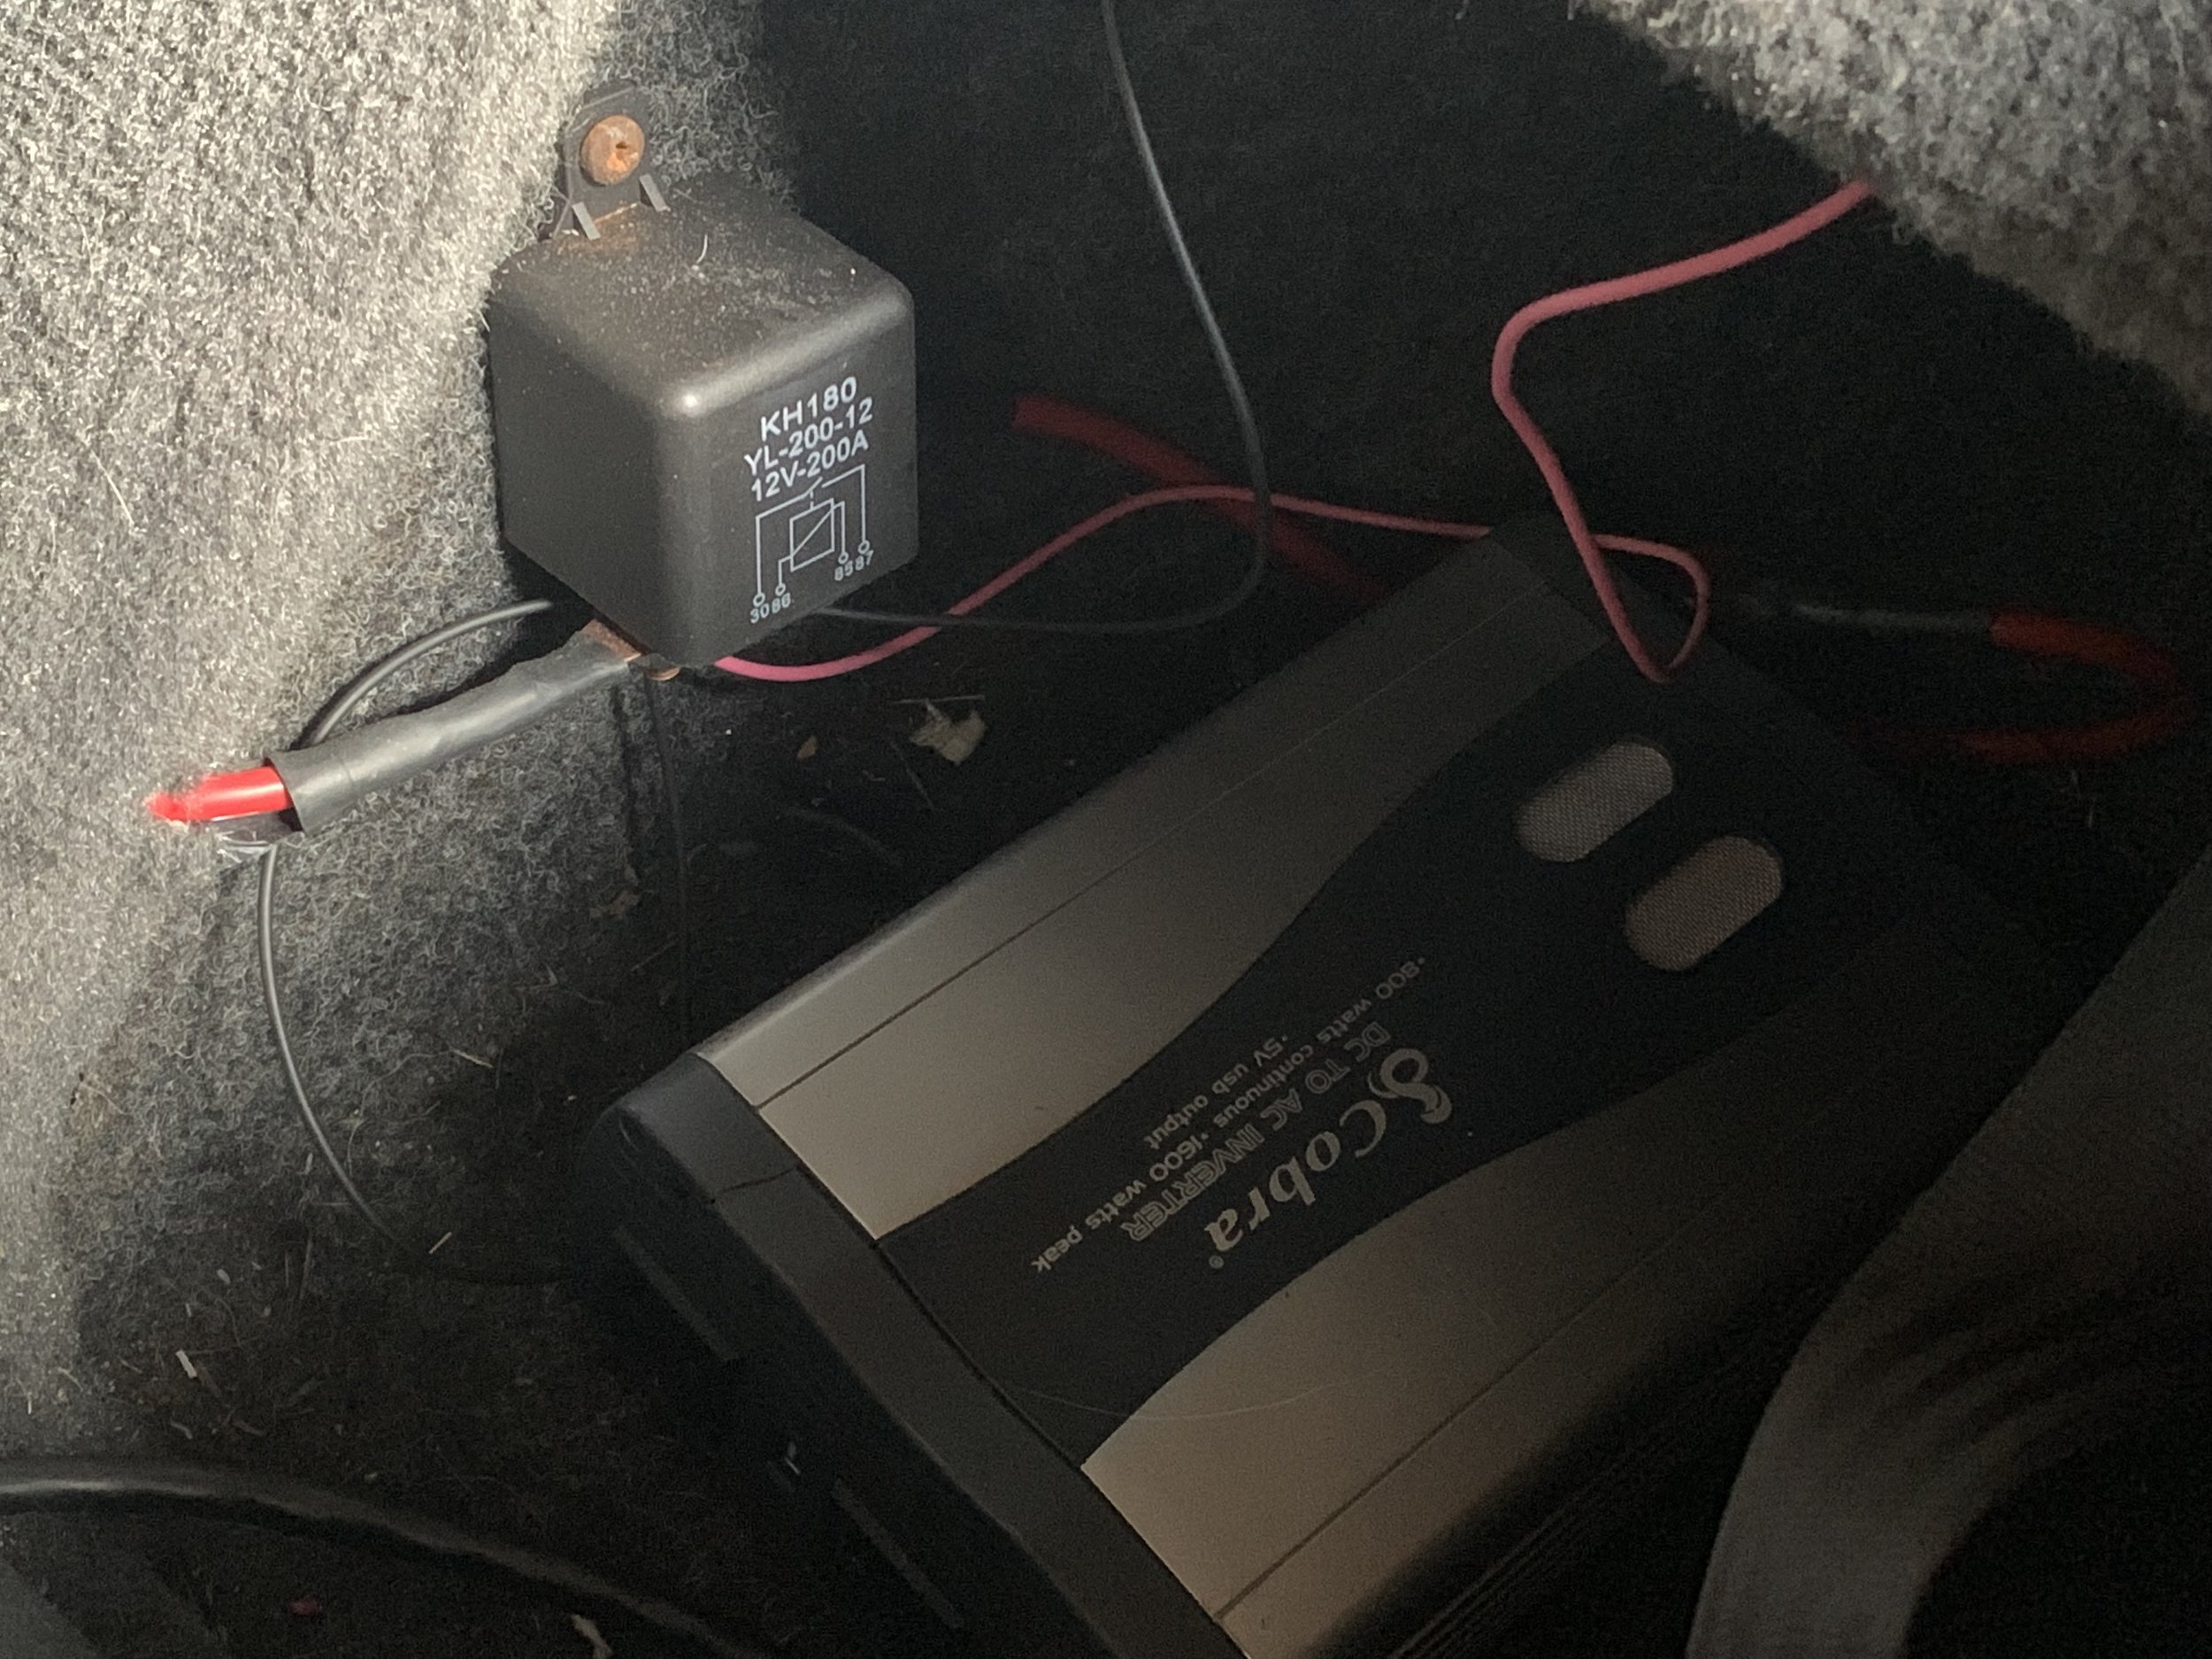 The 200A relay screwed into the lock box behind the driver's seat. One of the large red wires goes directly to the battery, while the other goes to the inverter. The smaller wires run to an ignition-switched fuse box behind the passenger seat. The inverter's ground goes directly to the battery.